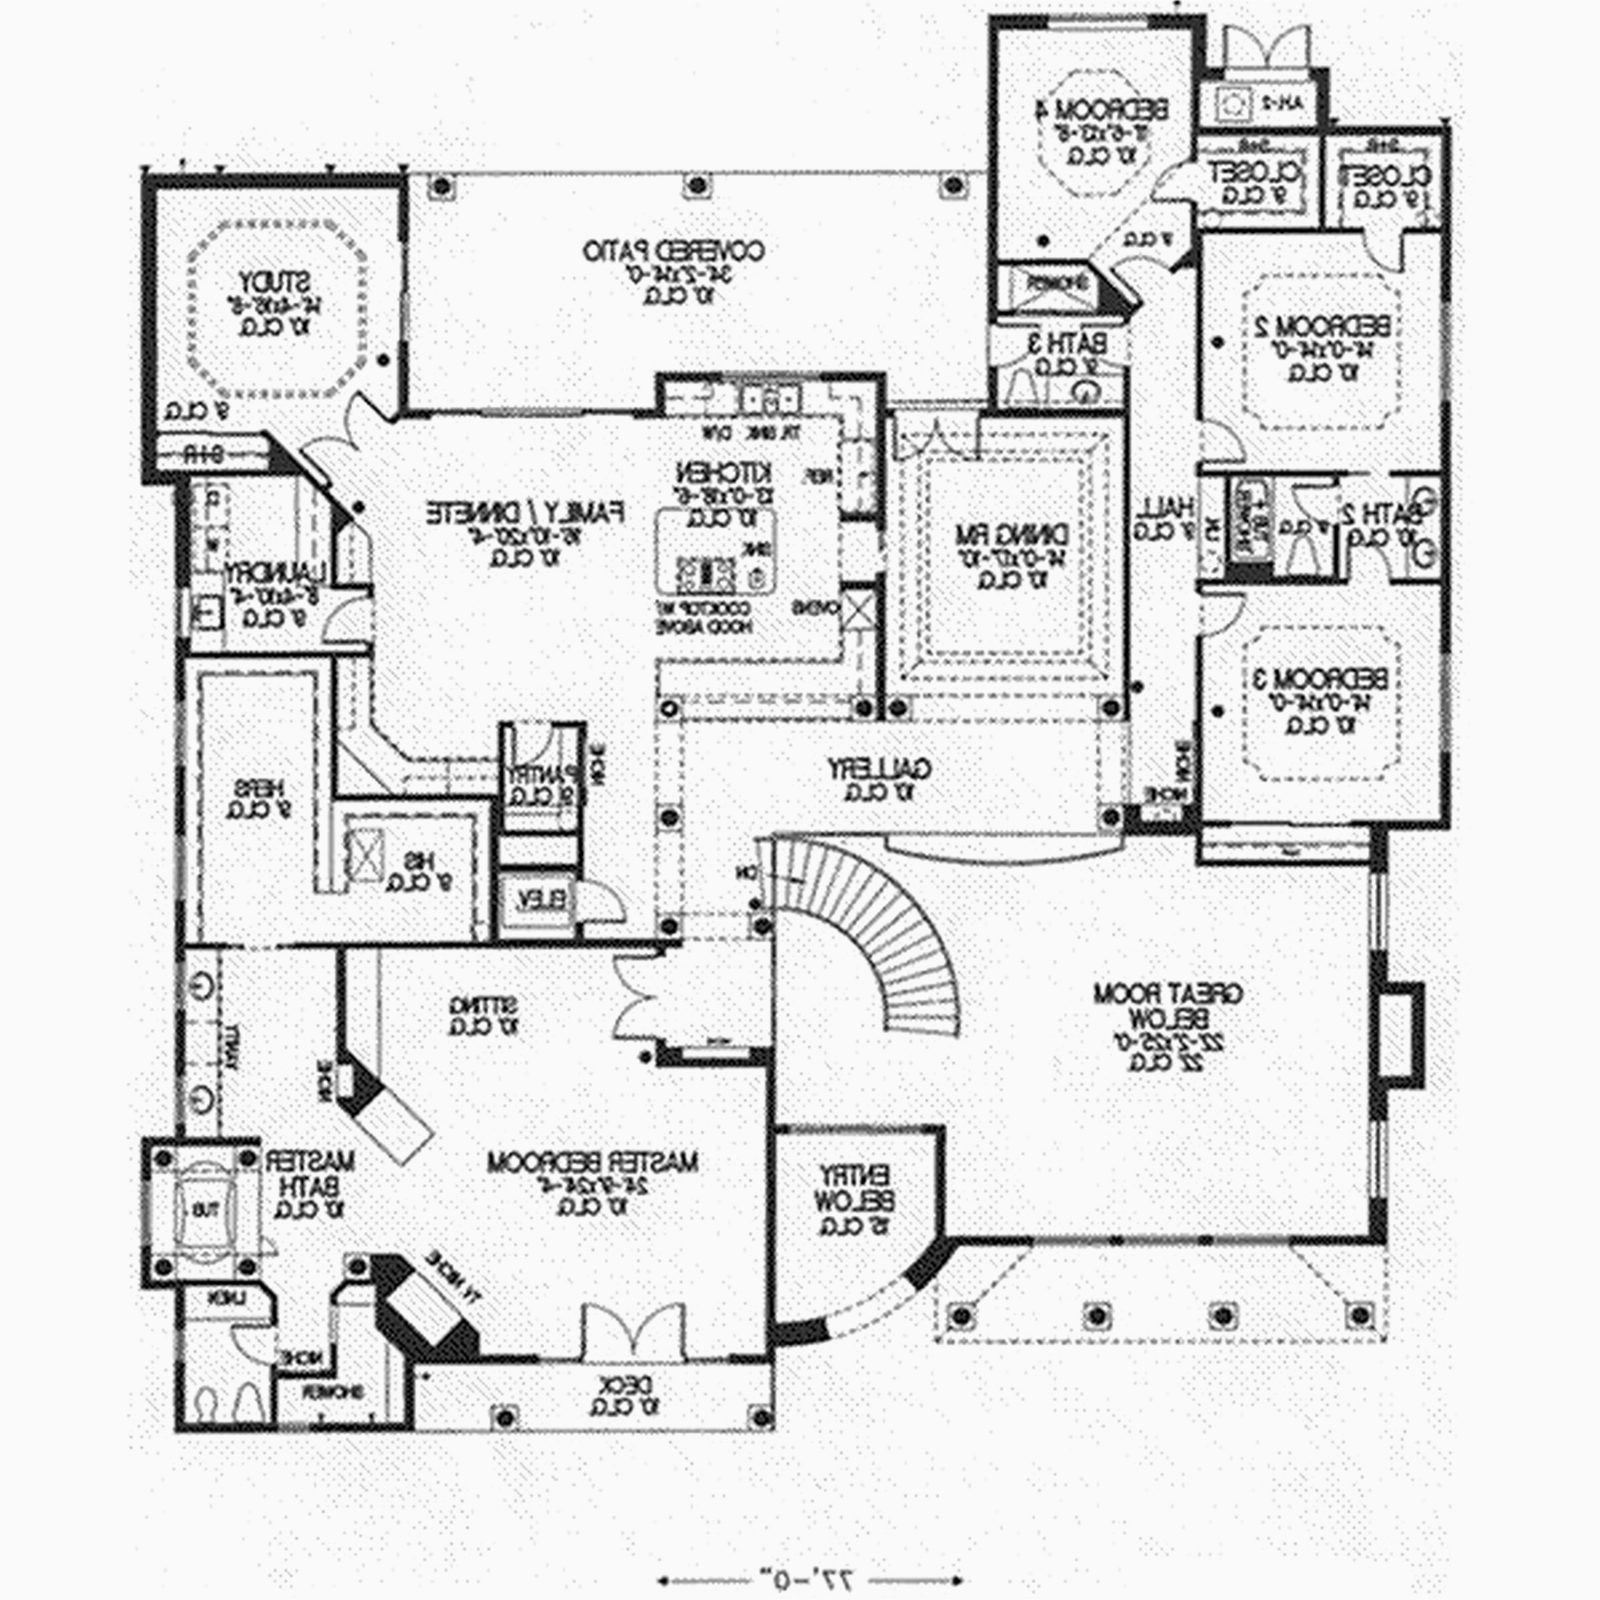 Swimming Pool Drawing Details Pdf At Free For Schematic Installation Examples With Heat 1600x1600 Modern House Floor Plan Houseplans Ultra Plans And Zen Designs